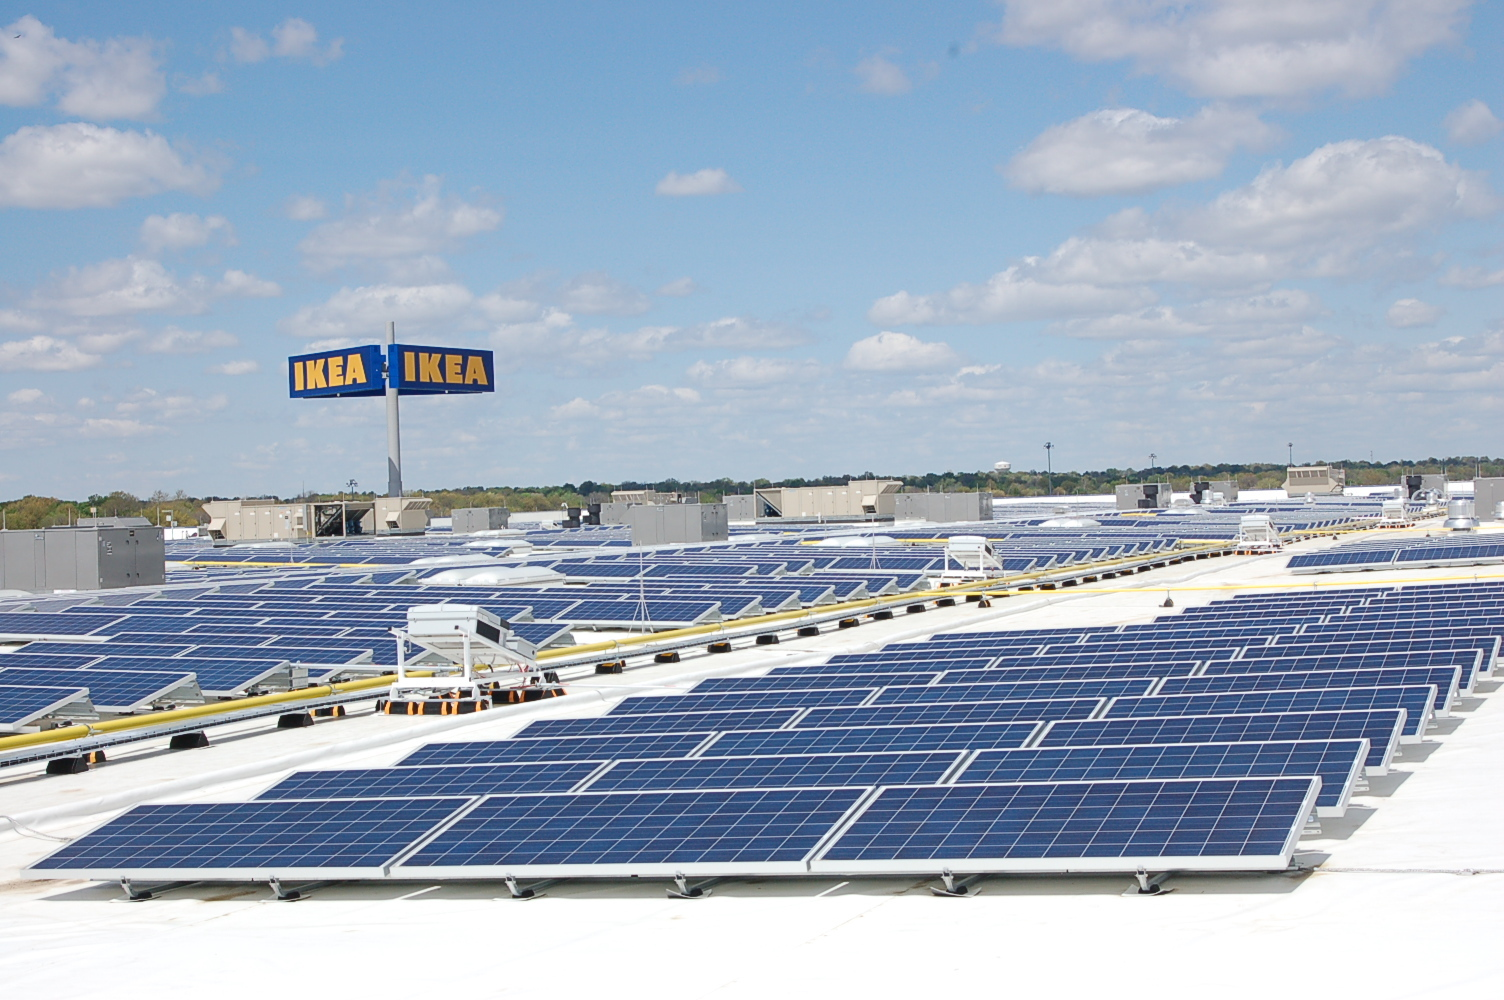 ikea completes state s largest rooftop solar array atop recently